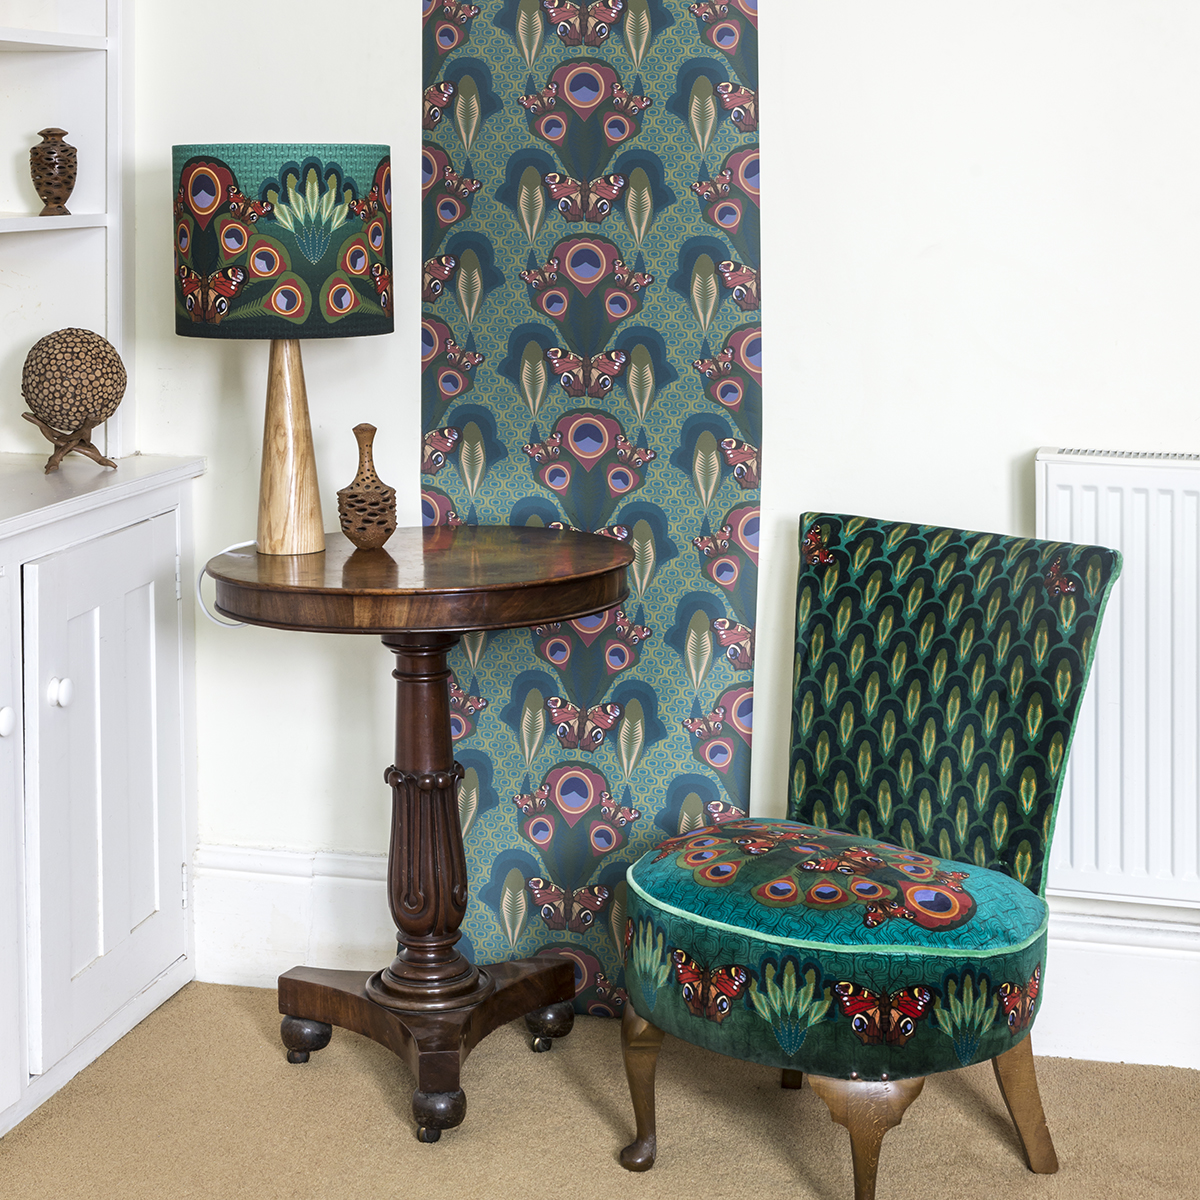 peacock butterfly wallpaper and chair .jpg